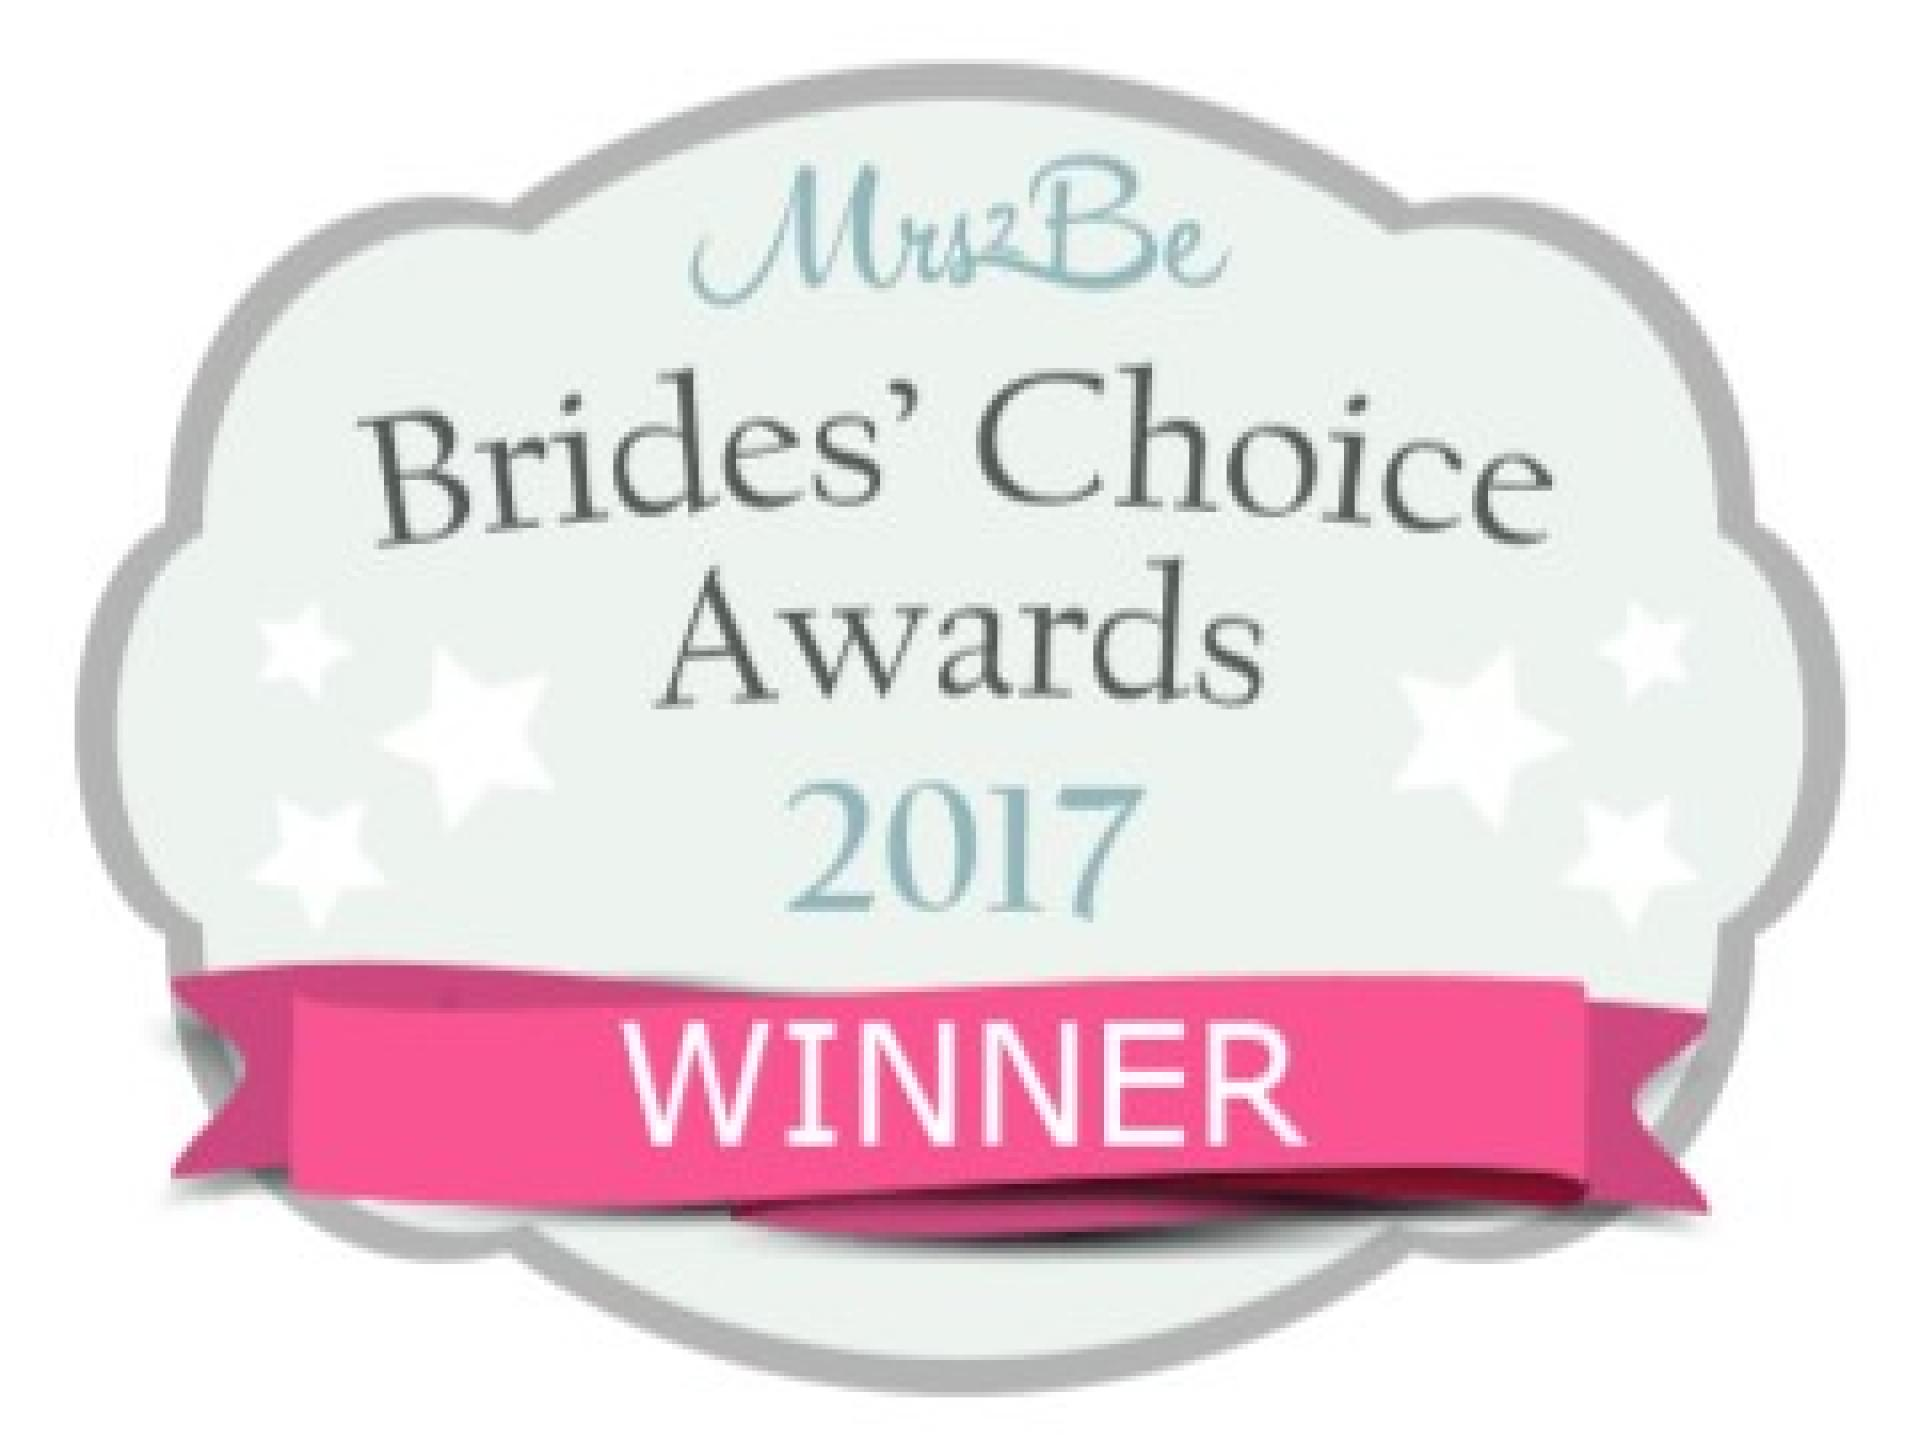 Best Hotel Wedding Venue Leinster 2017